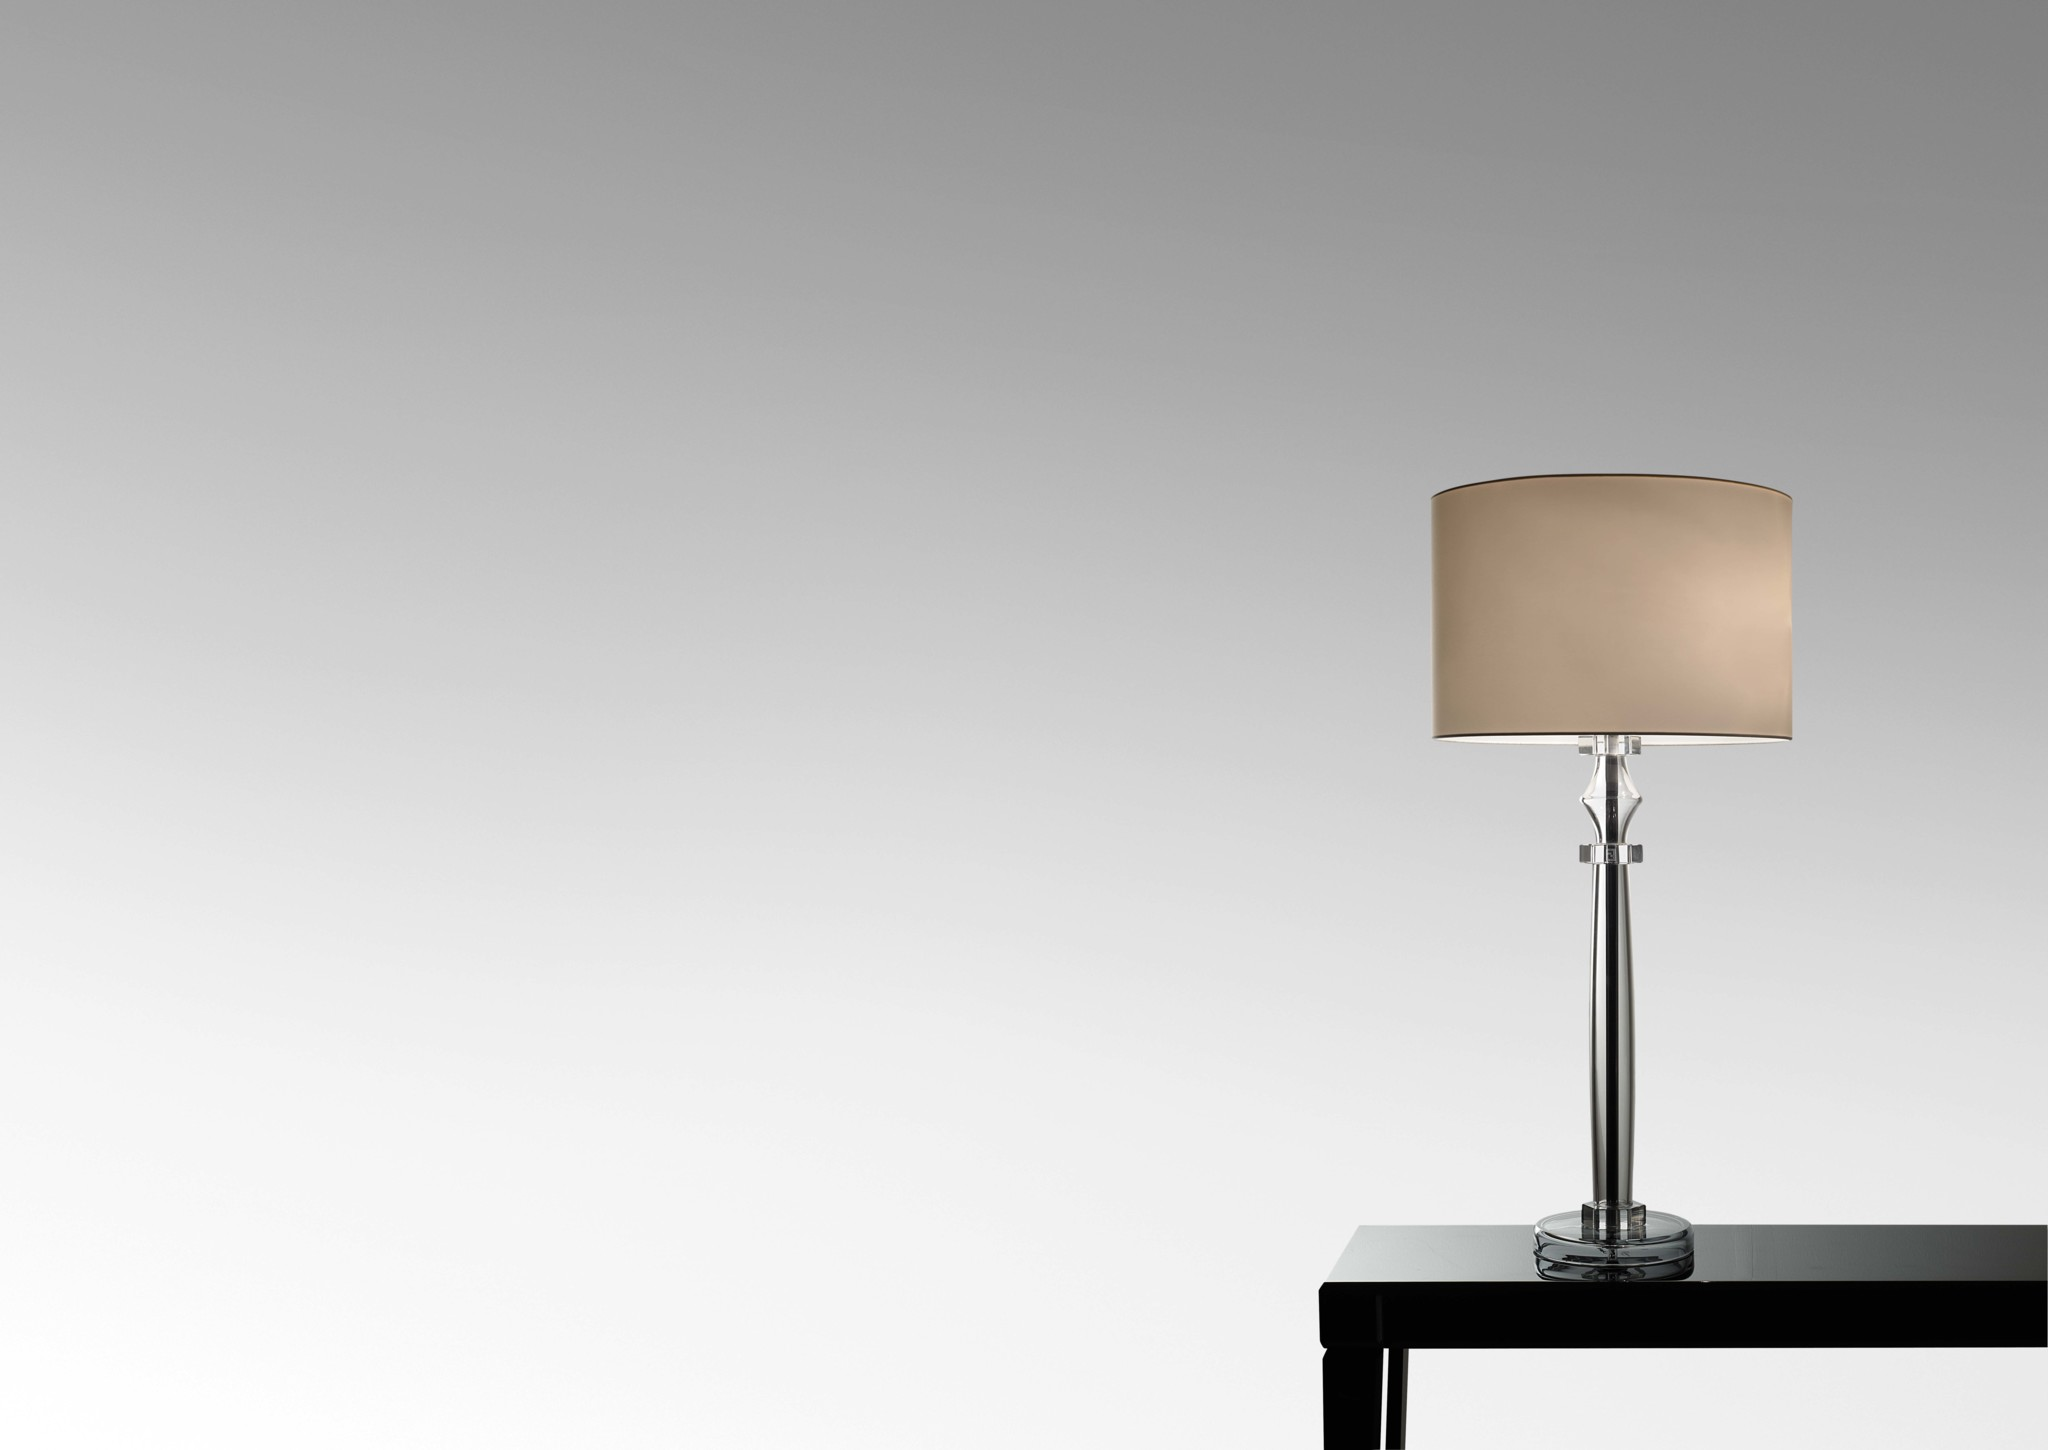 Fendi casa lighting Furniture Fend02000000016fendiottaviatablelampmurlmp34295940de24f9f8b5a8ec7b6f82aa160a Indesignlivehk Ottavia Table Lamp Fendi Casa Eurasia Concept